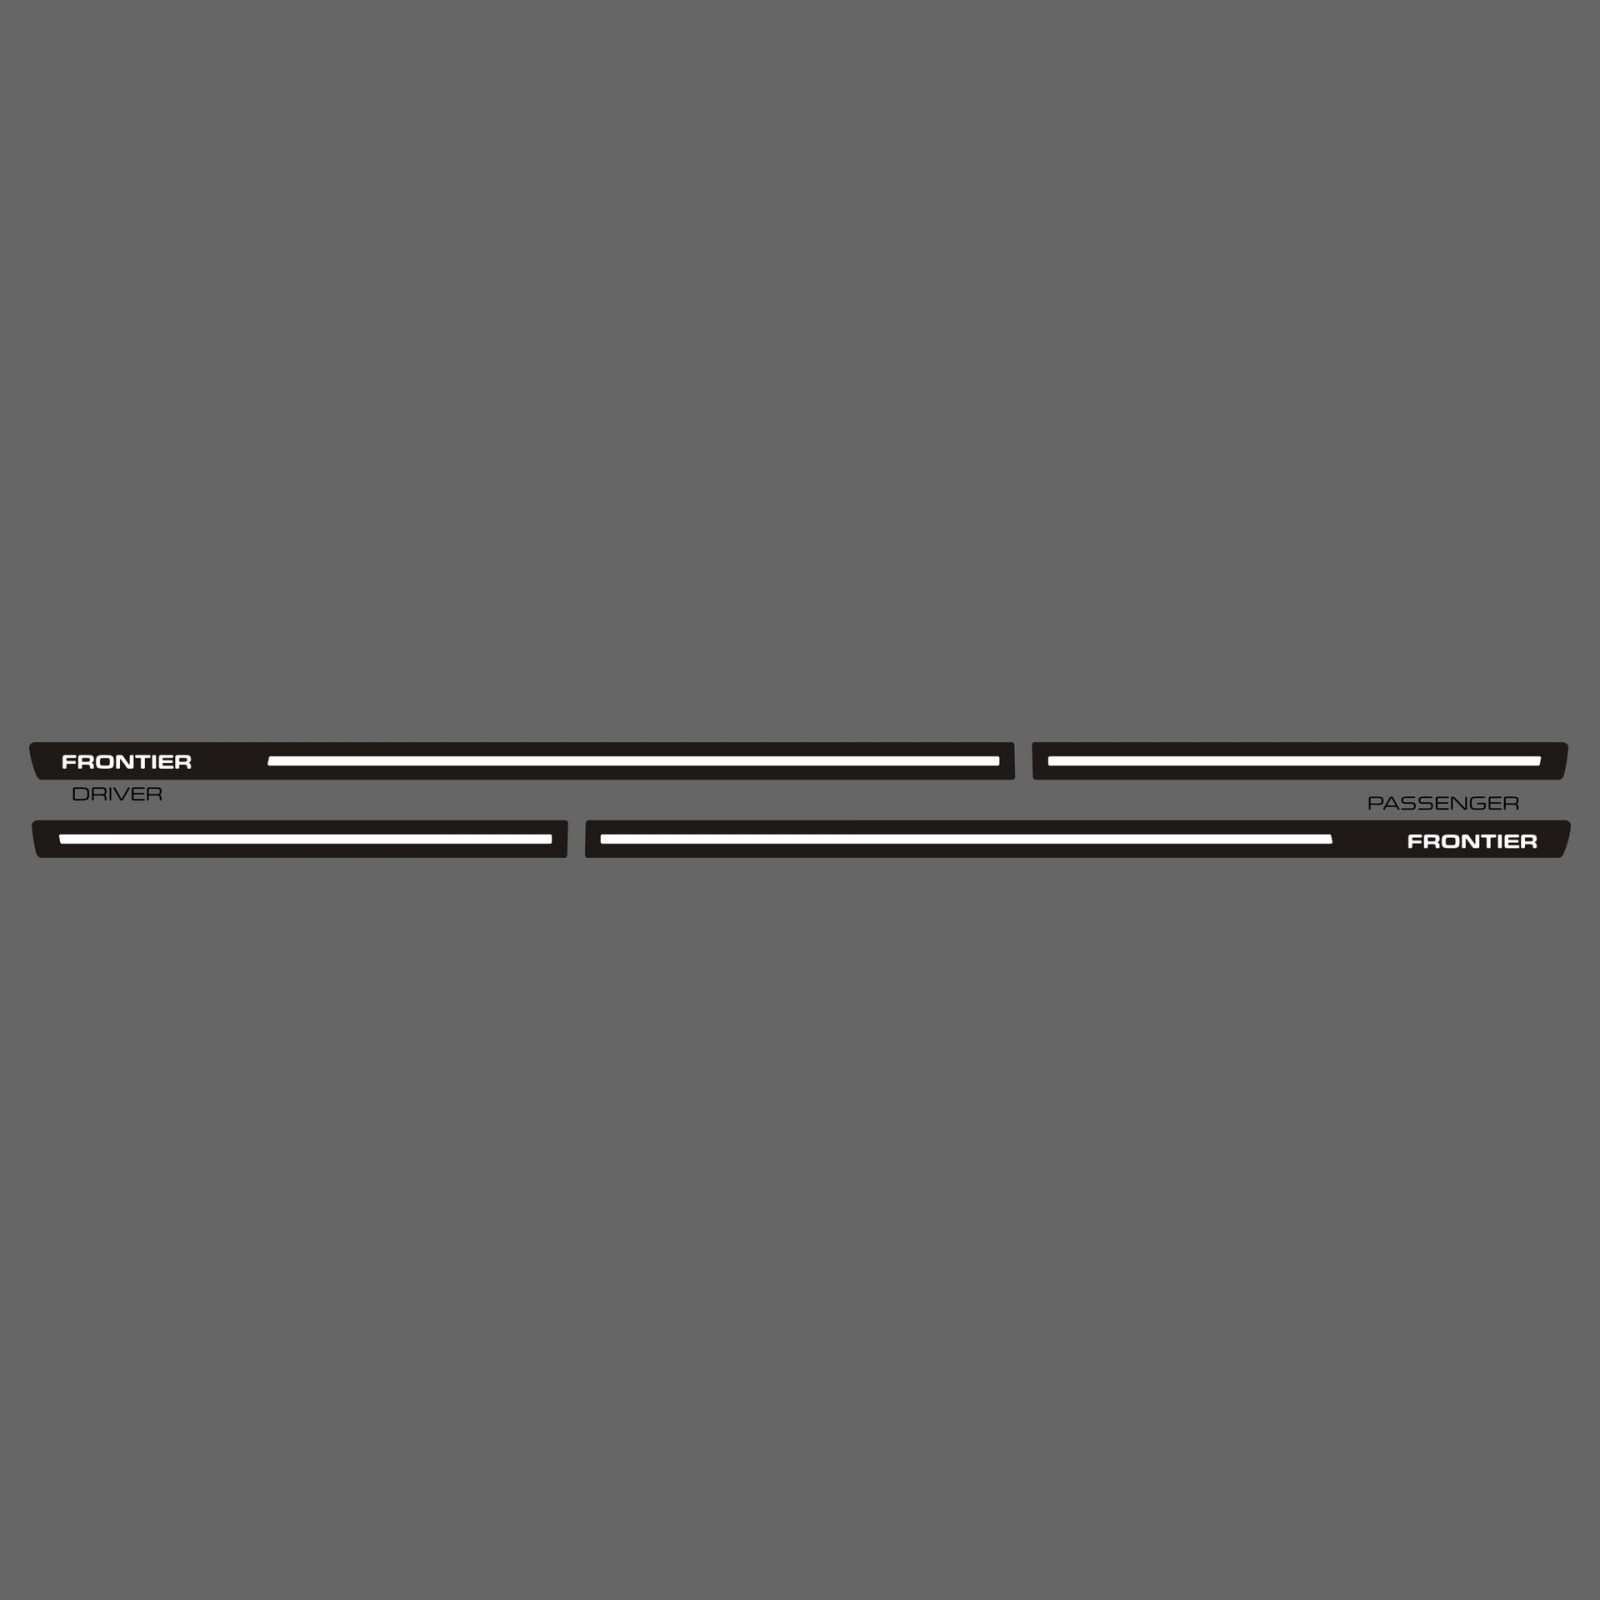 2016 Nissan Frontier King Cab Camshaft: Body Side Moldings For 2016 Nissan Frontier (King Cab